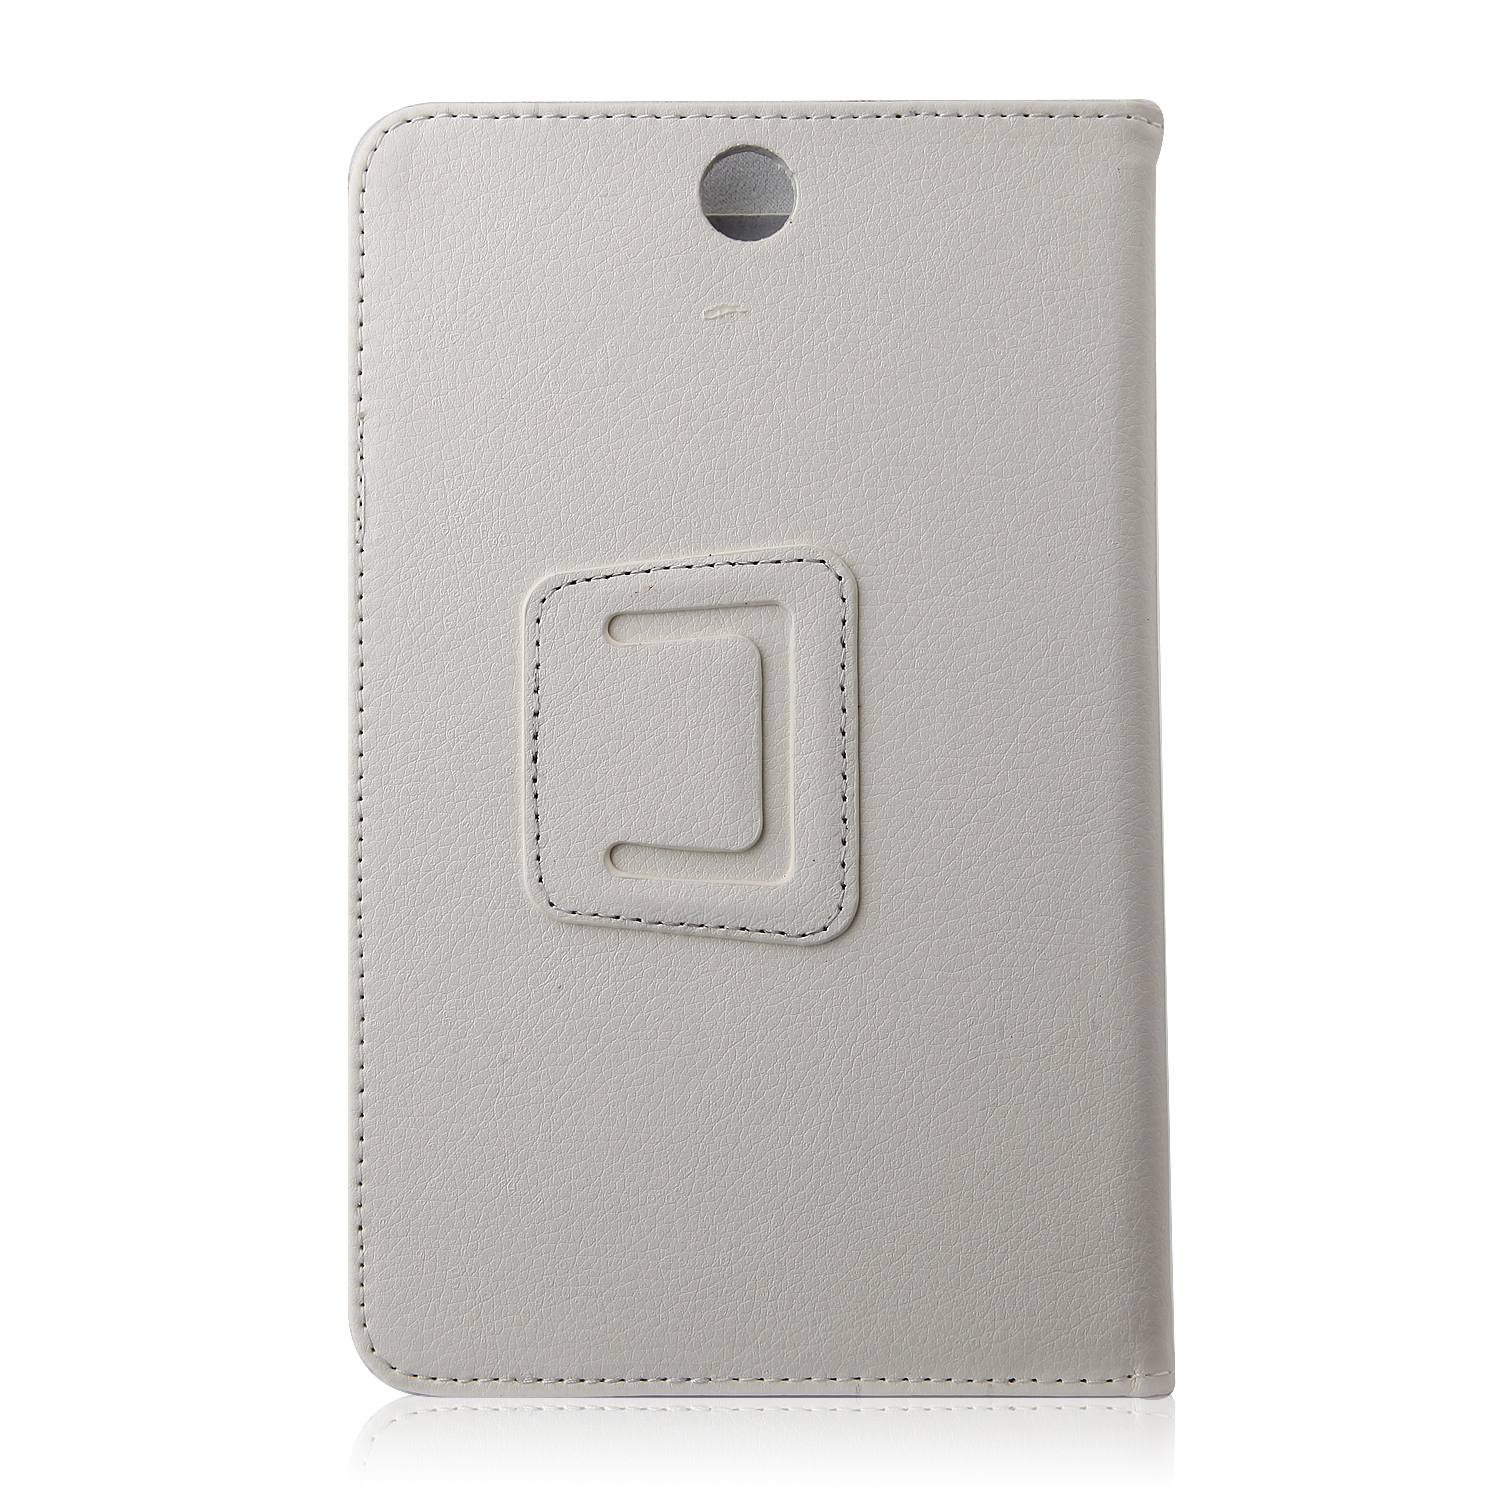 Protective PU Leather Stand Case Cover for Lenovo A3500 Tablet PC White